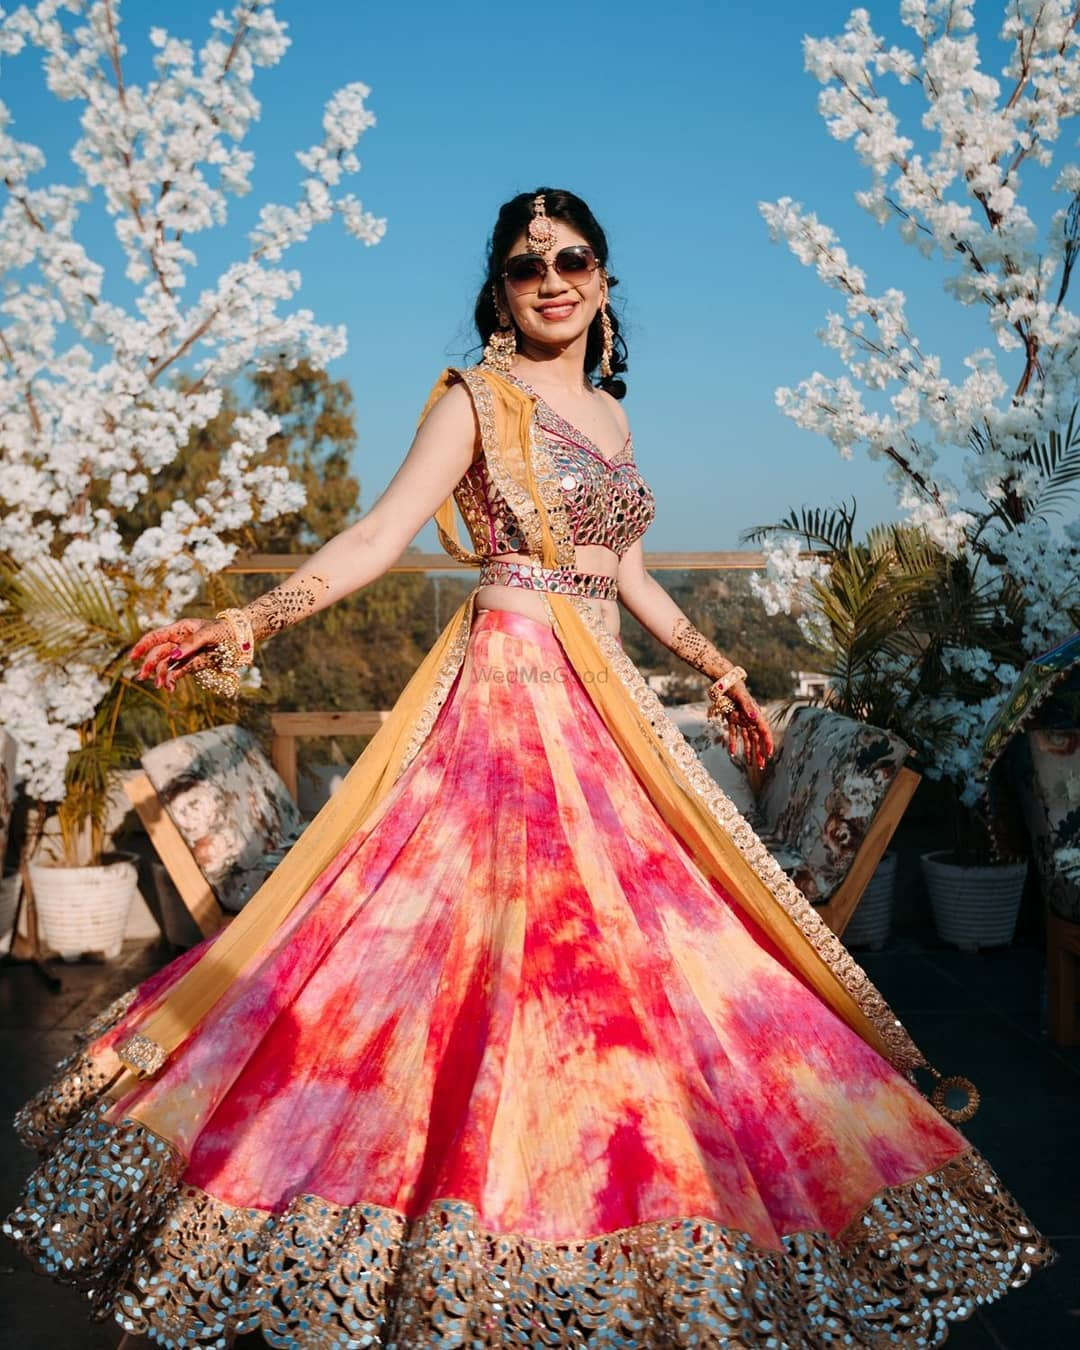 Tie-dye lehenga design: Light Lehenga Designs for Bride & Bridesmaid